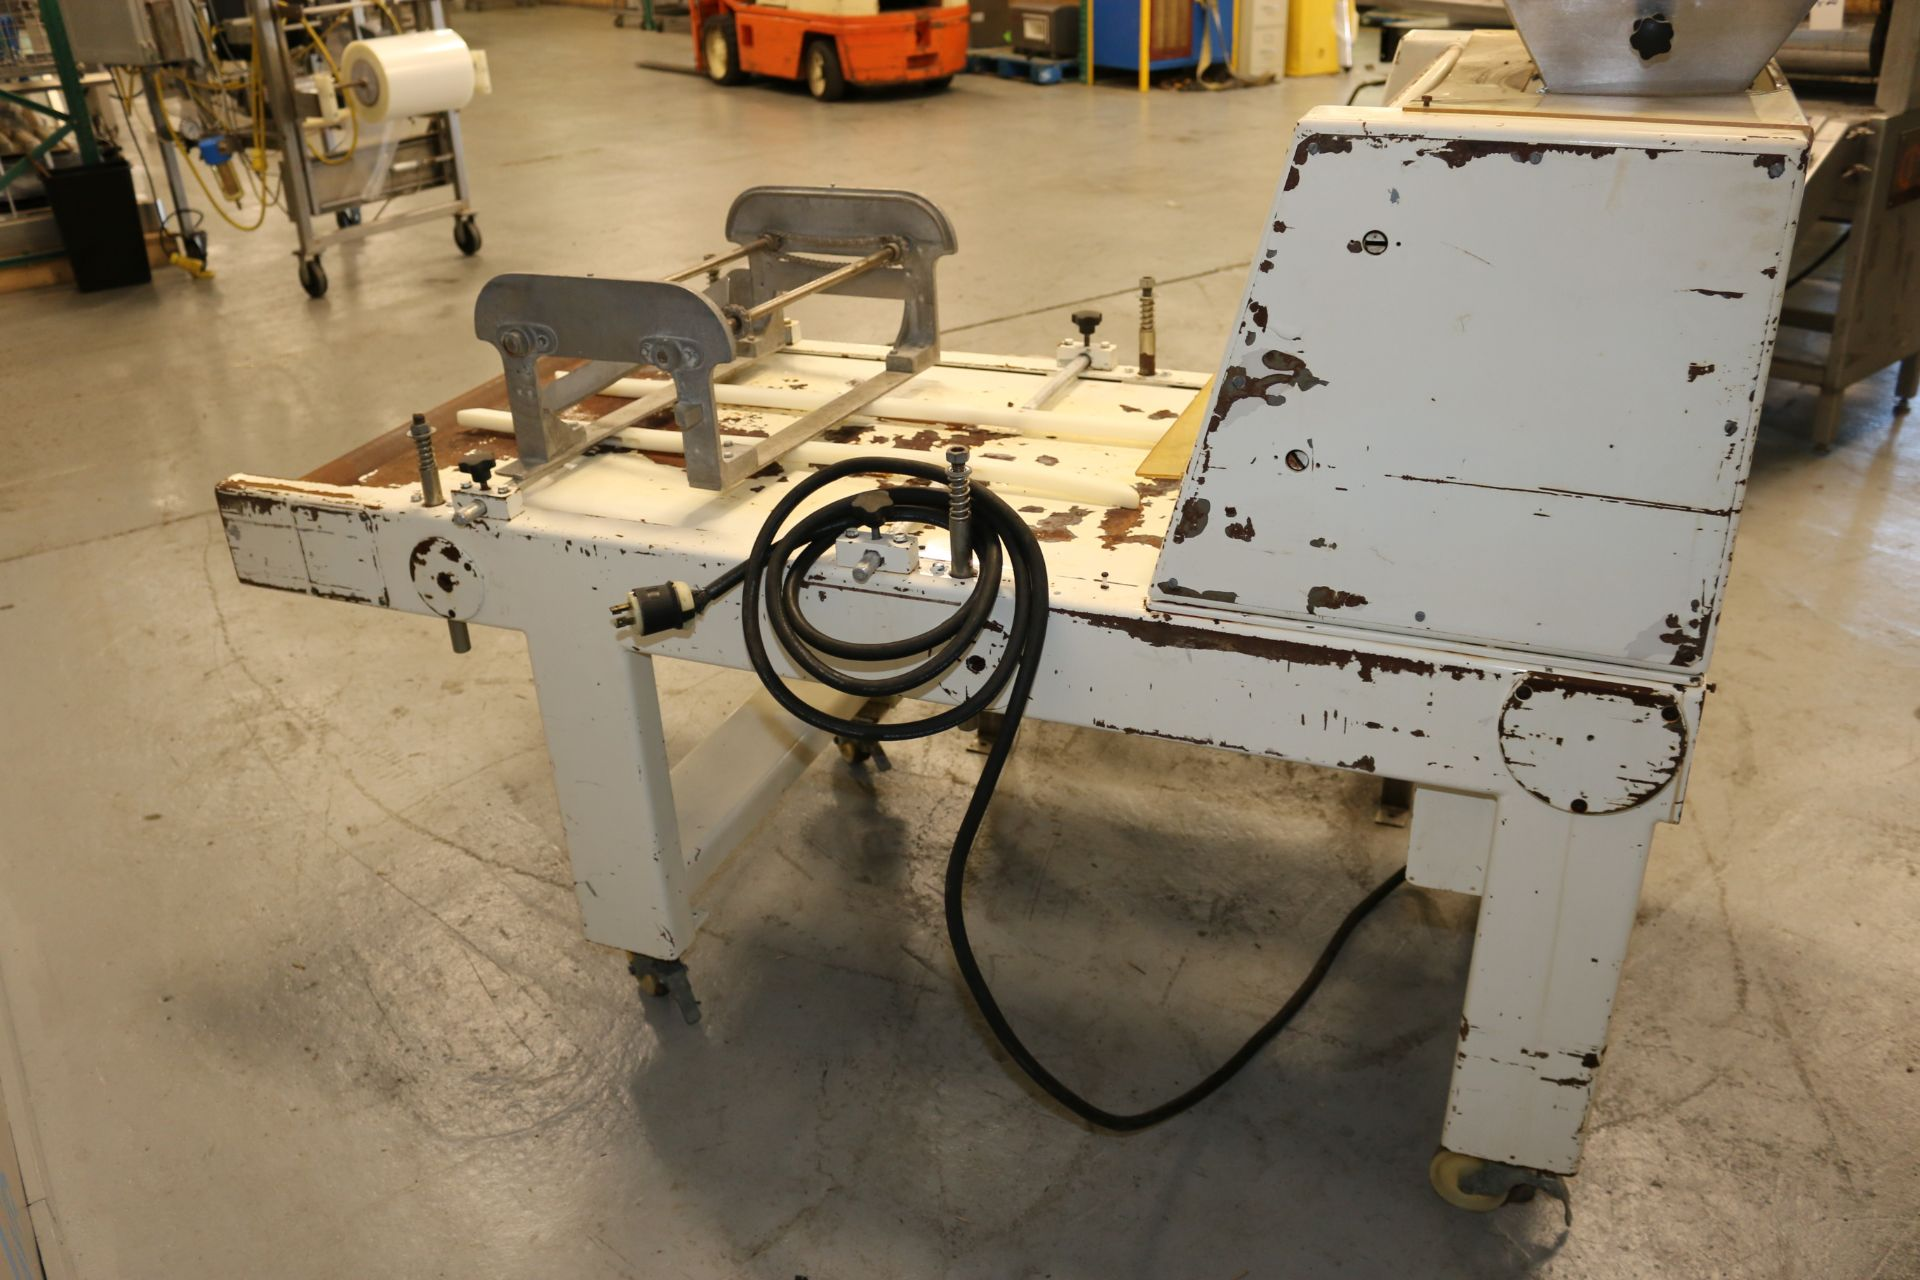 Lot 51 - Adams Equipment Corp. Double Extruder, M/N LR-67, S/N 585-83, 220 Volts, 3 Phase, with Installed